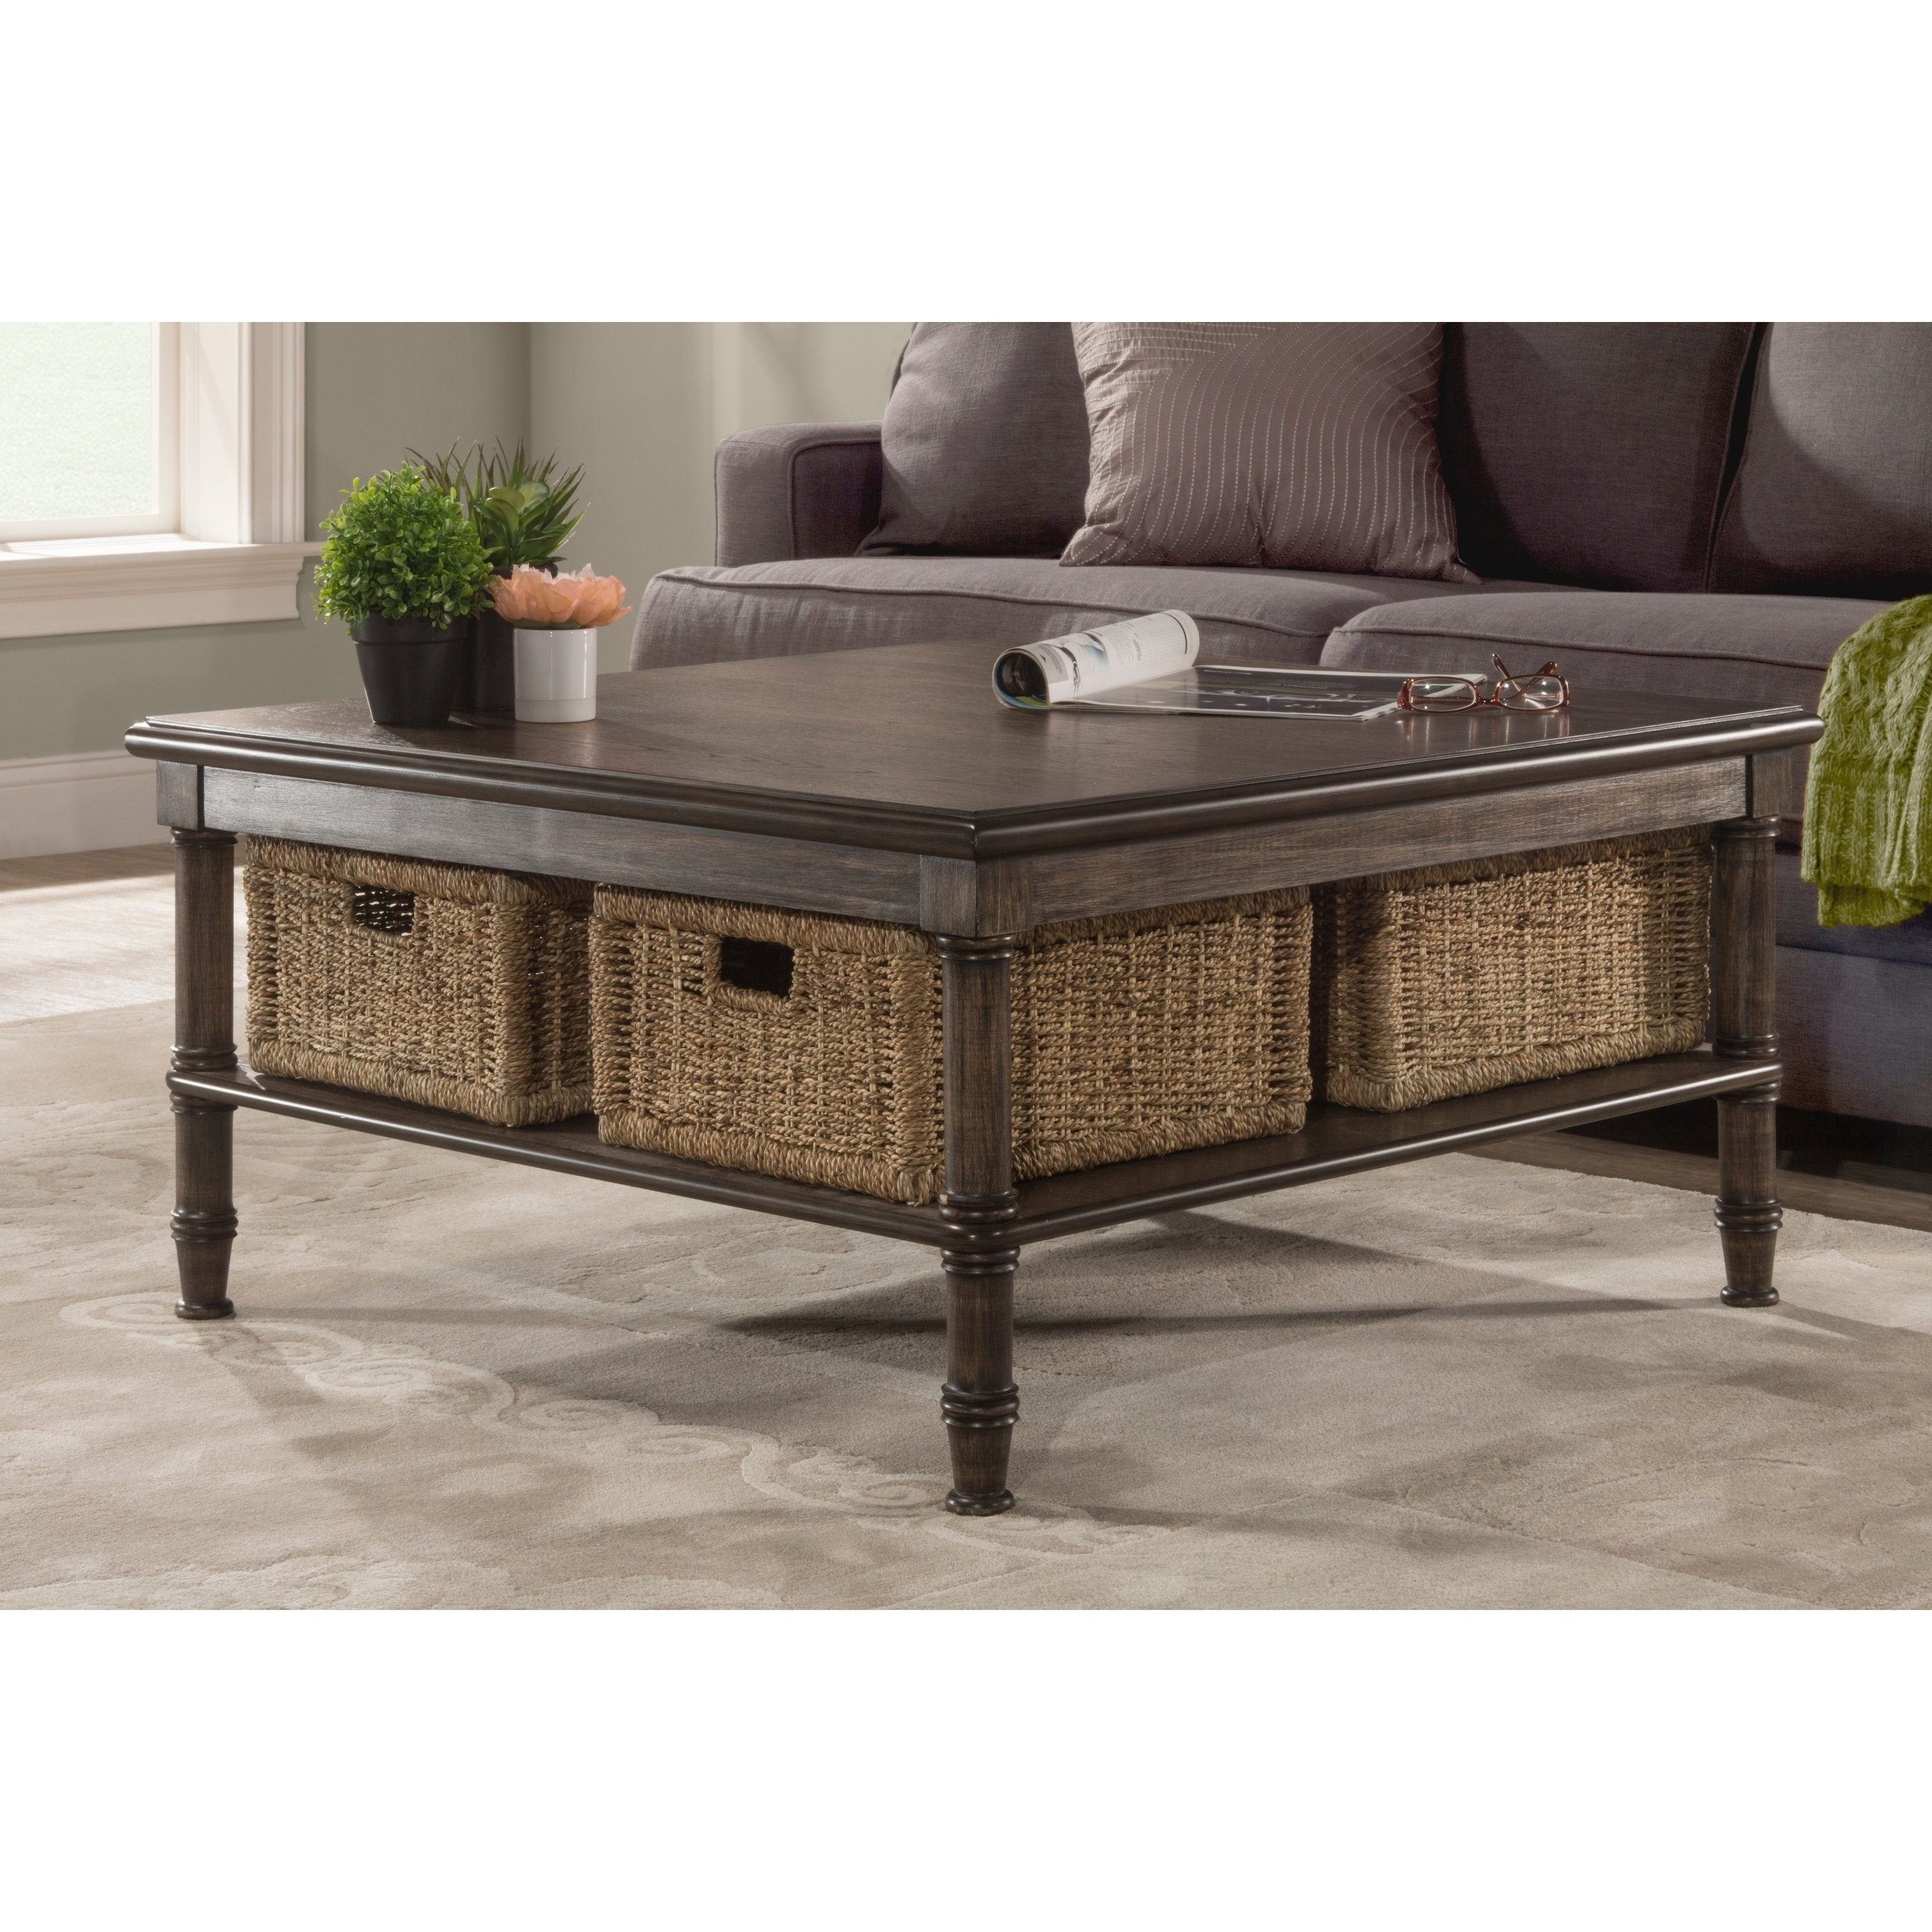 Most Recent Seneca Lift Top Cocktail Tables Within Shop Seneca Coffee Table – 4 Baskets Included – Free Shipping Today (View 13 of 20)